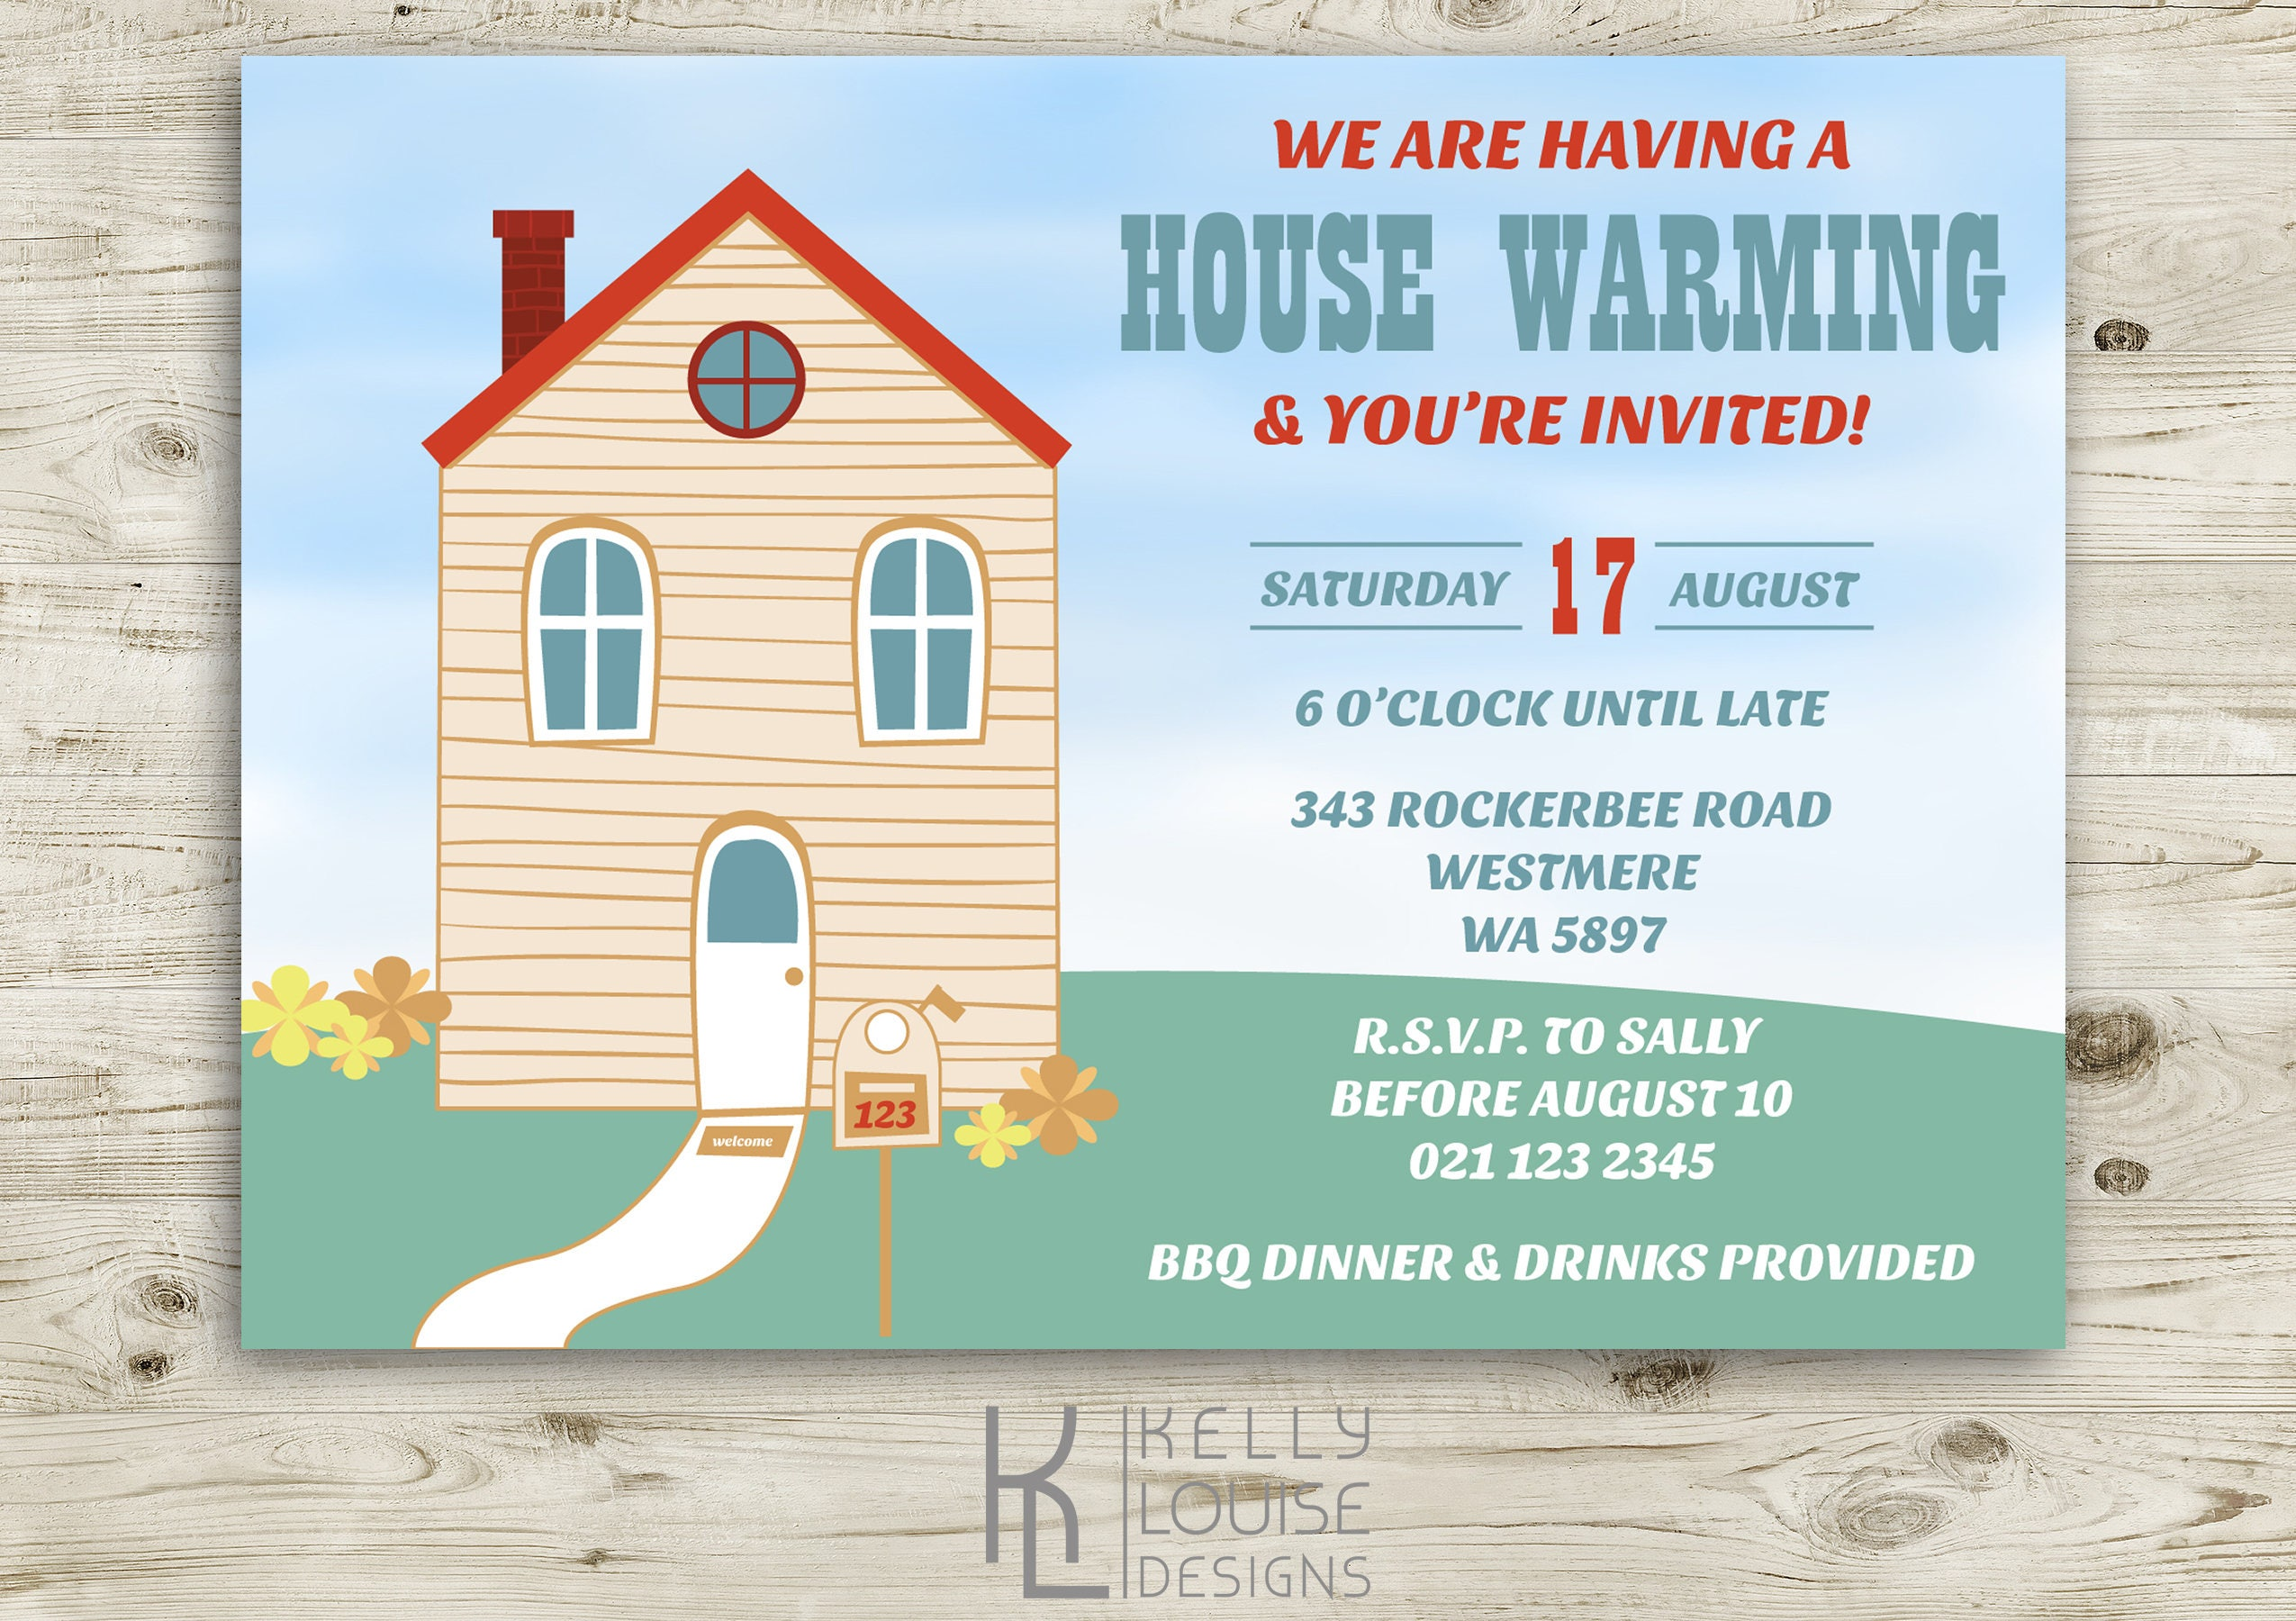 House Warming Invitation | House Warming Party | New House Party ...